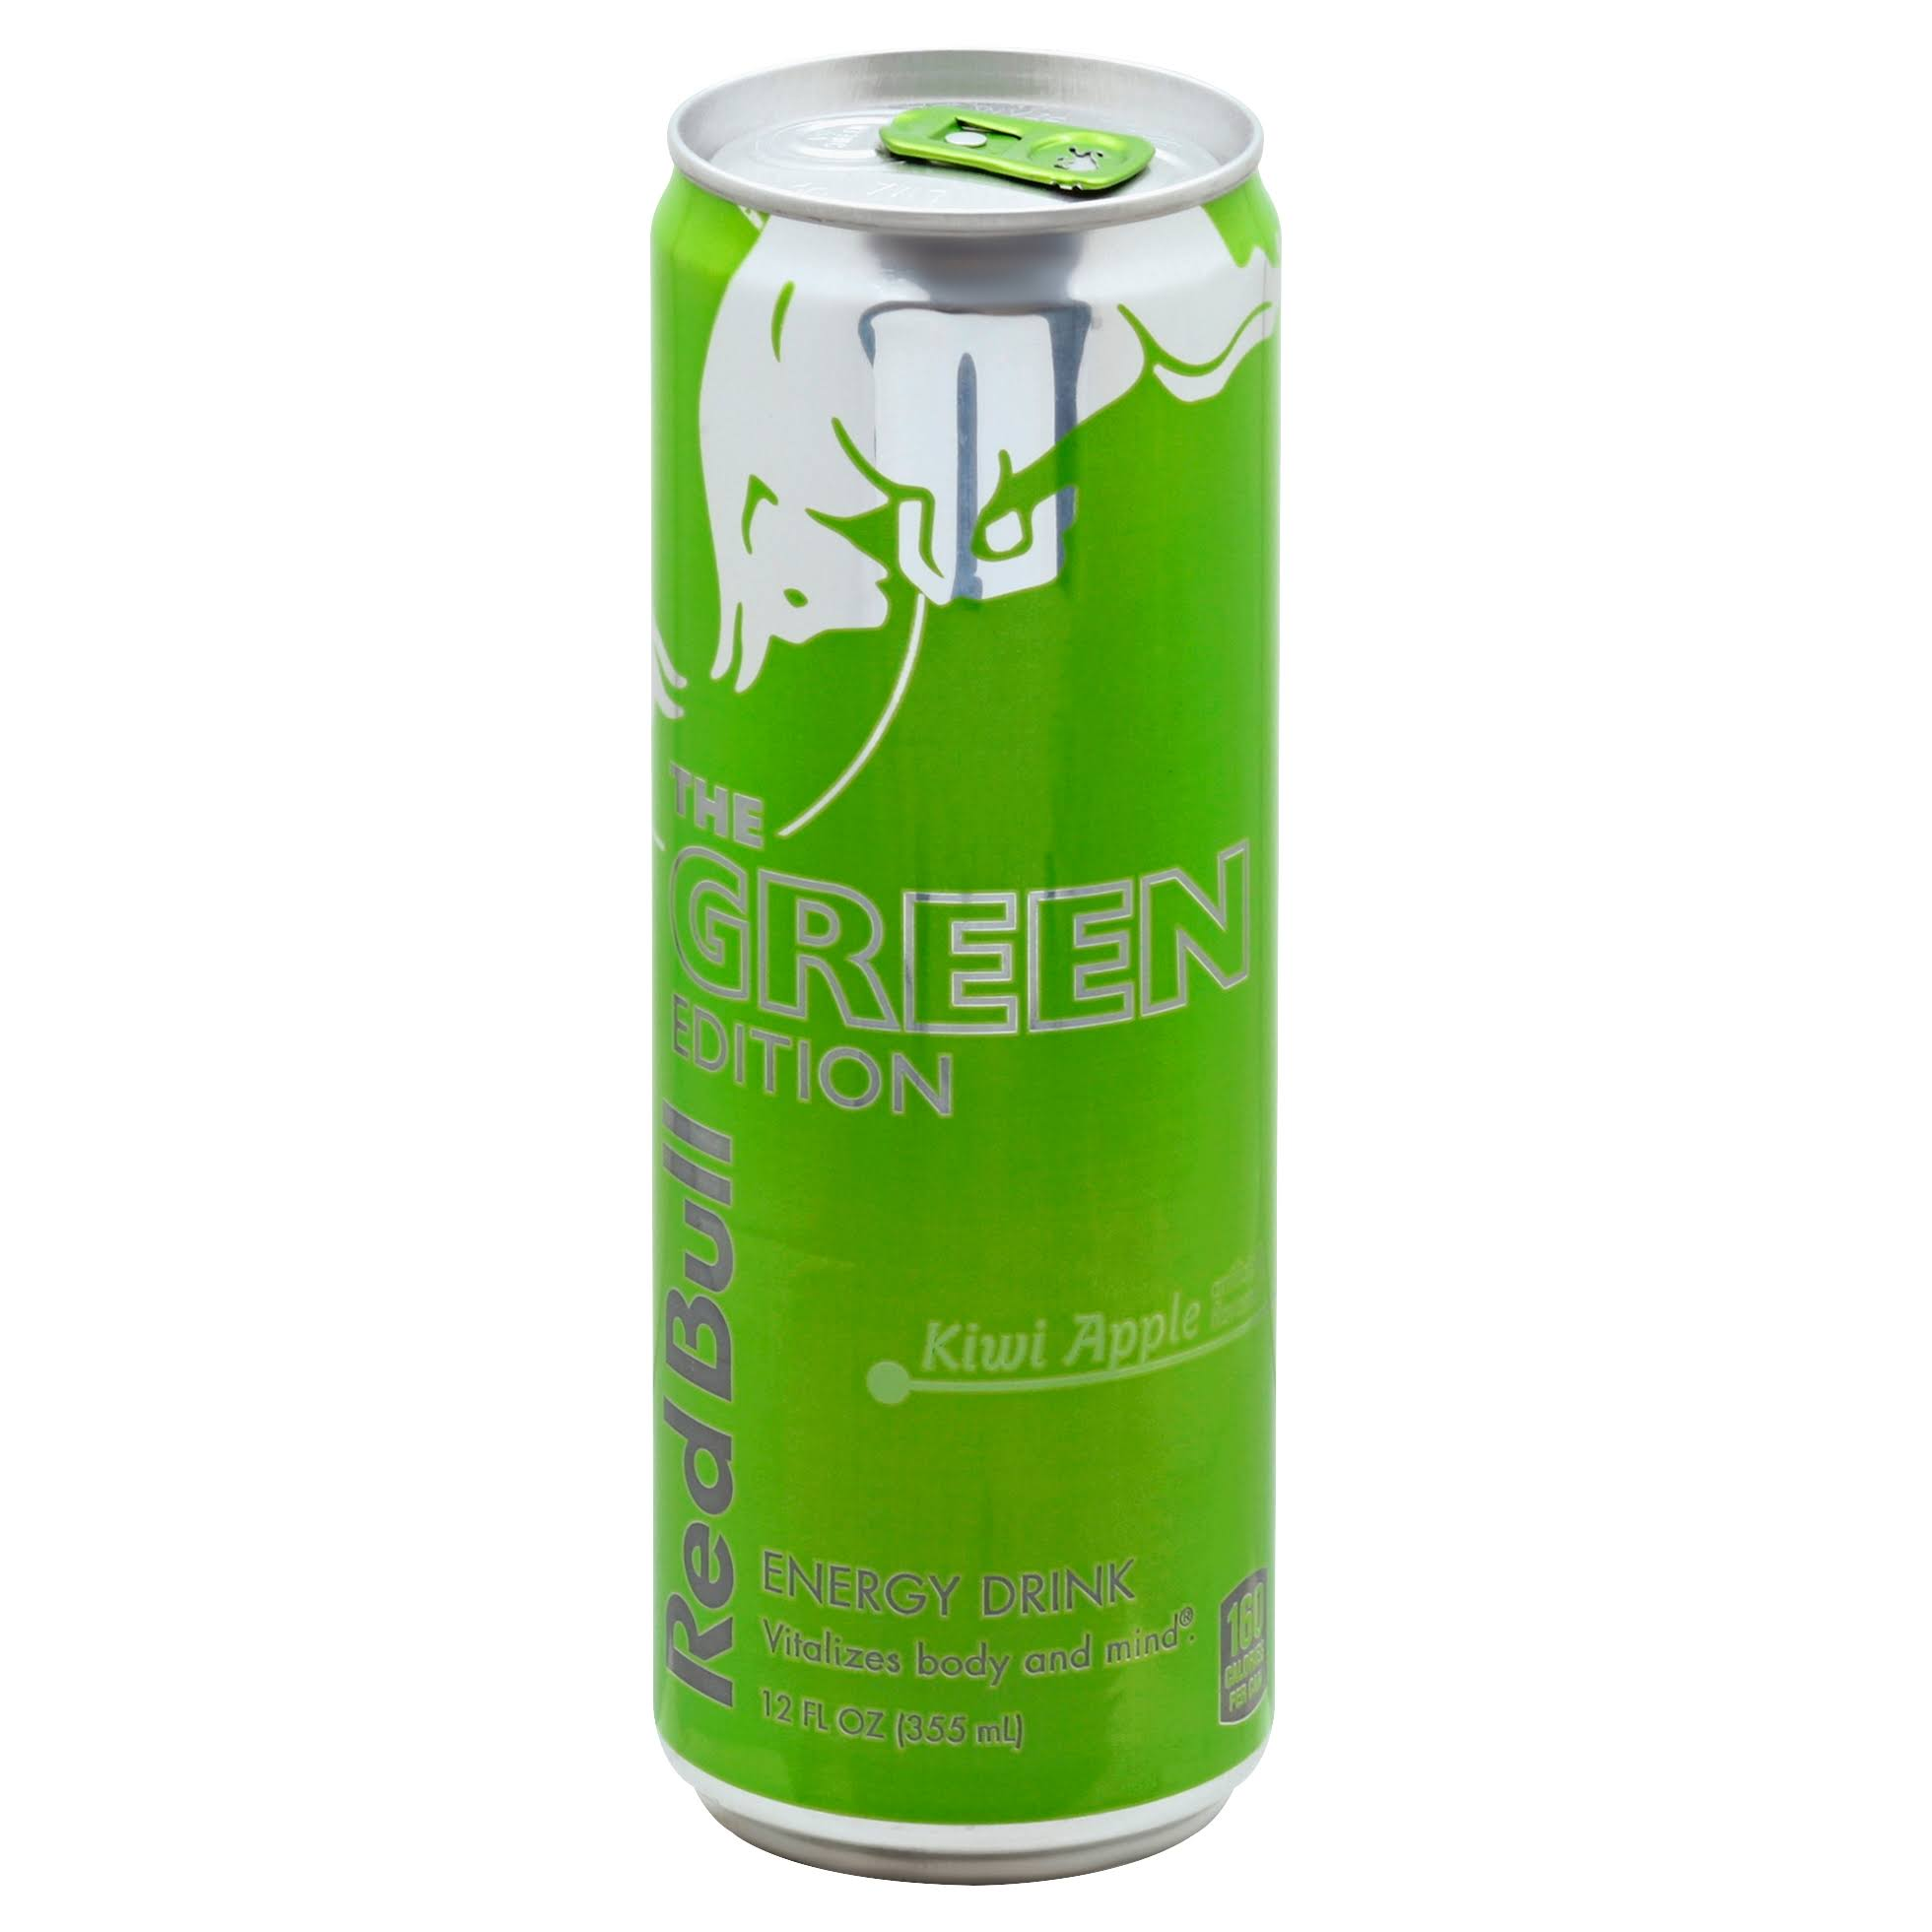 Red Bull Energy Drink, The Green Edition, Kiwi Apple - 12 fl oz